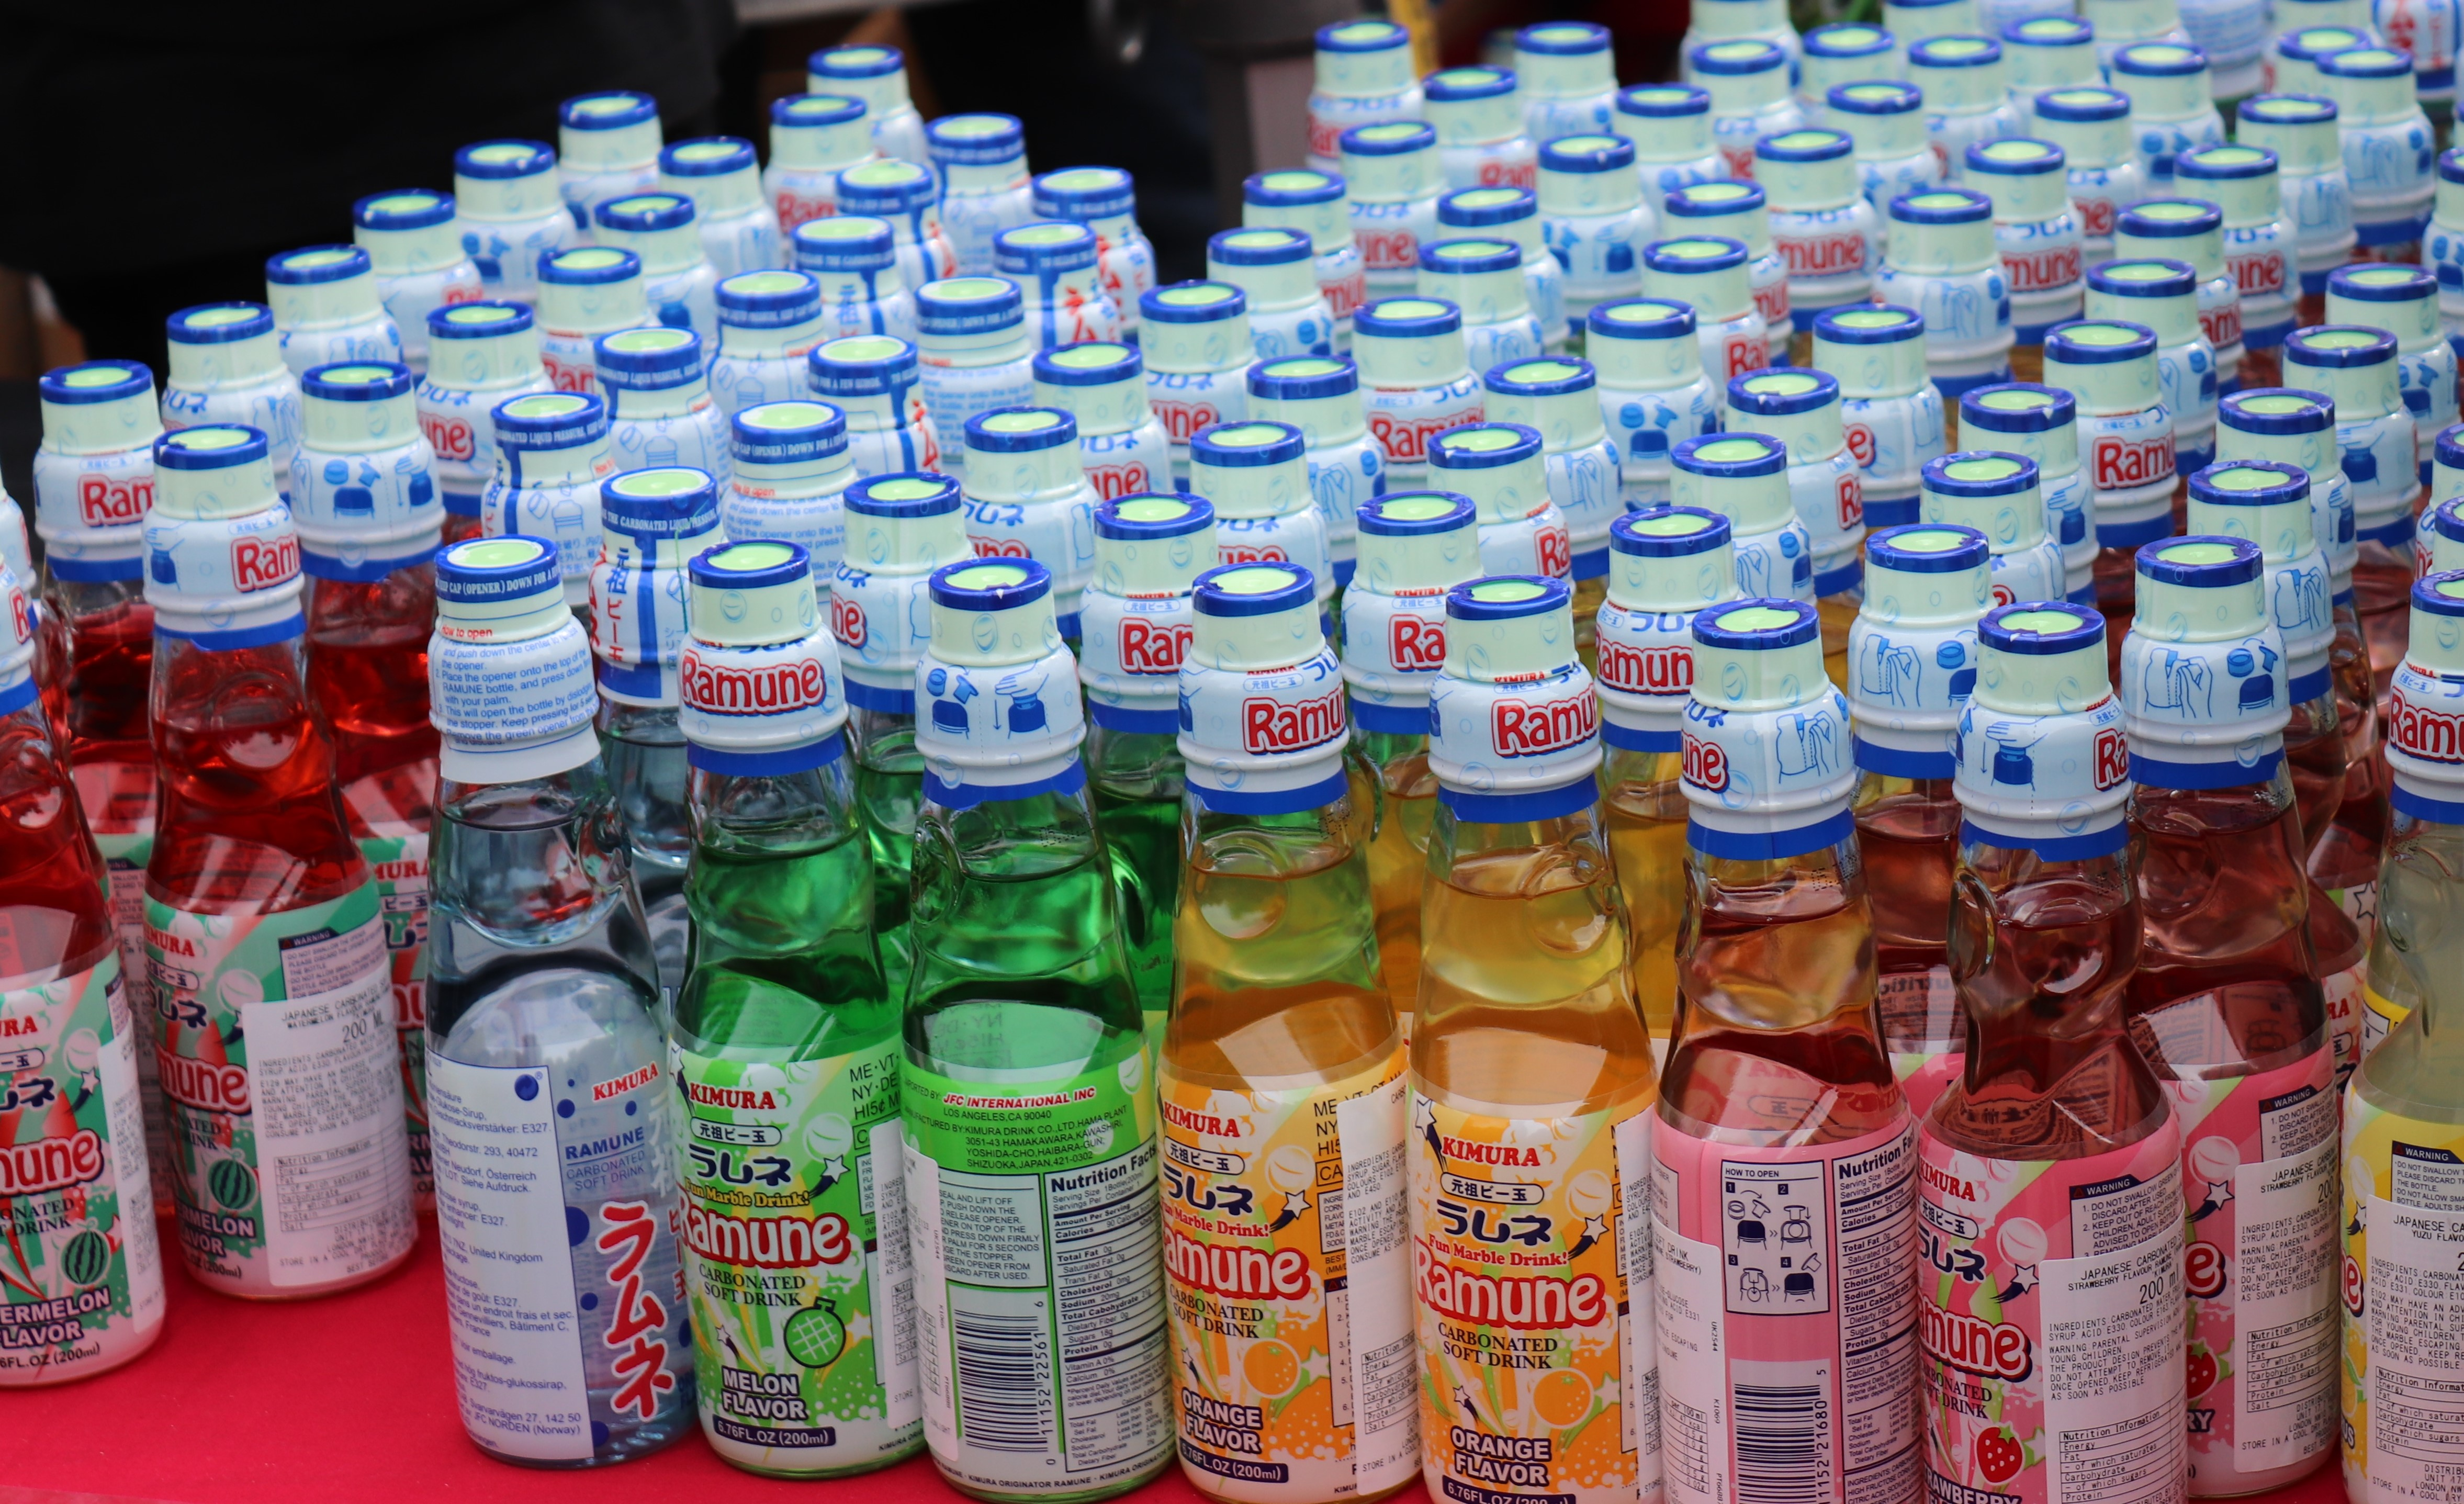 Lemonade popular in Japan - Ramune